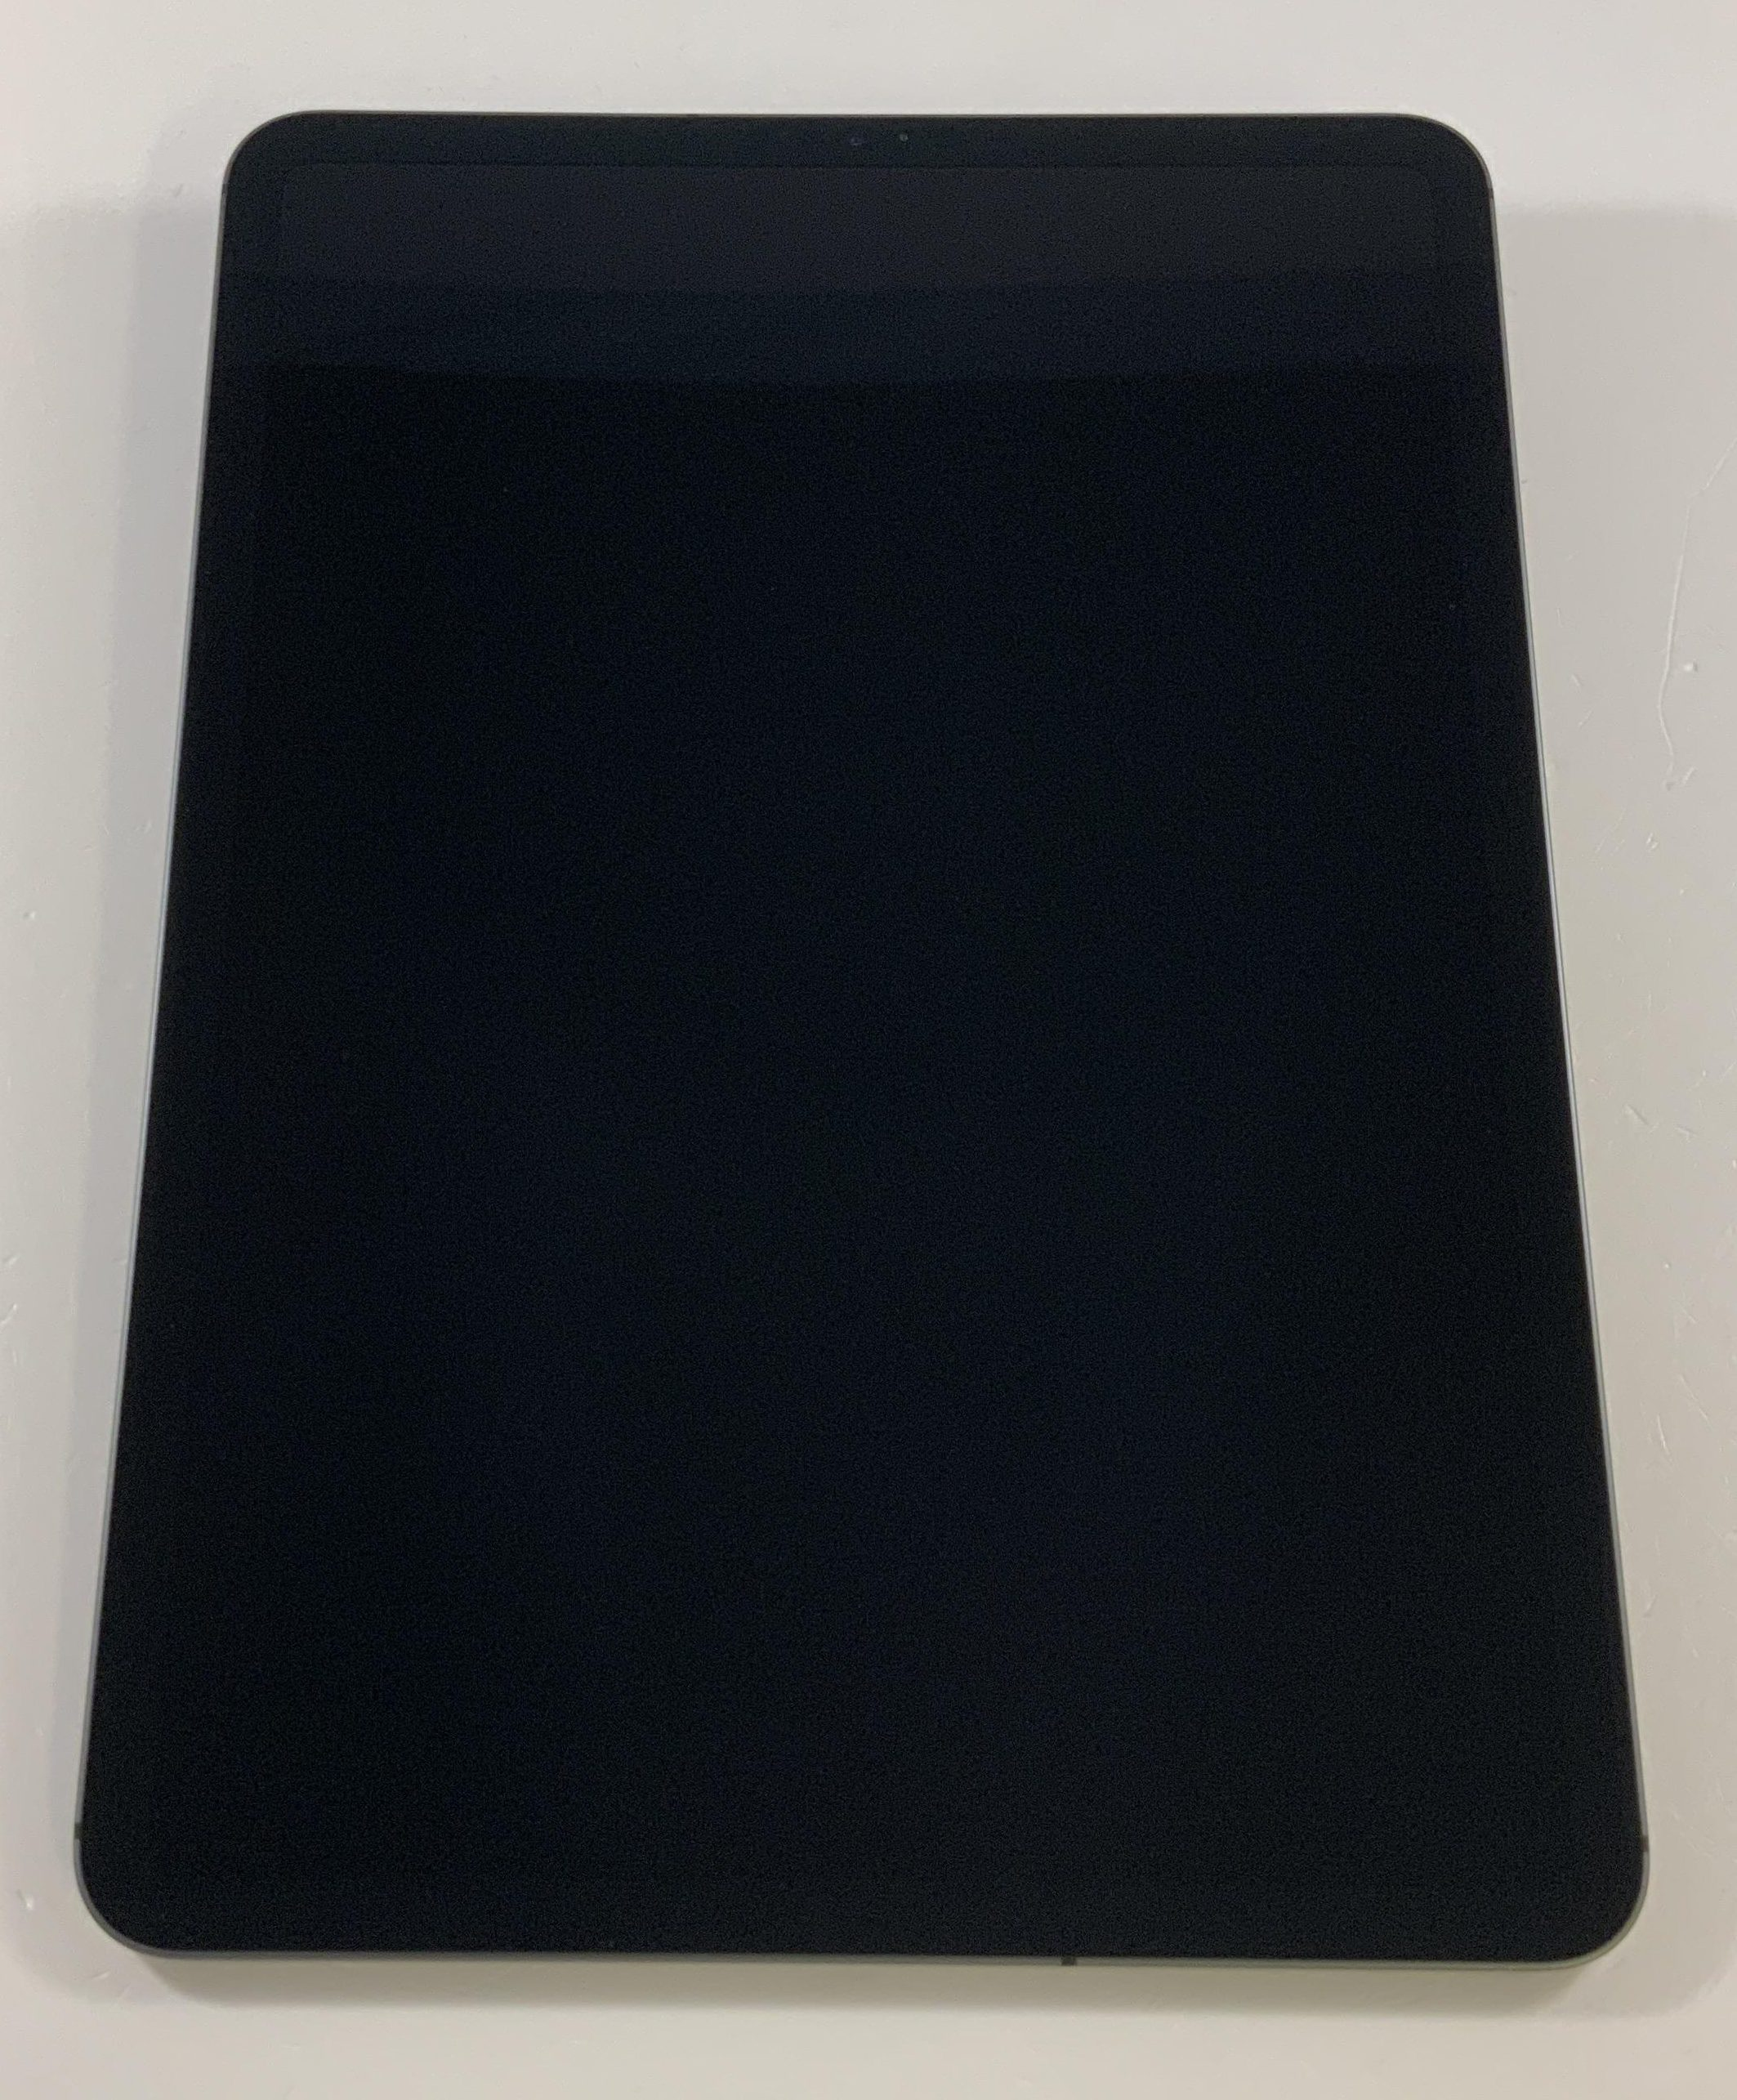 "iPad Pro 11"" Wi-Fi + Cellular 256GB, 256GB, Space Gray, obraz 1"